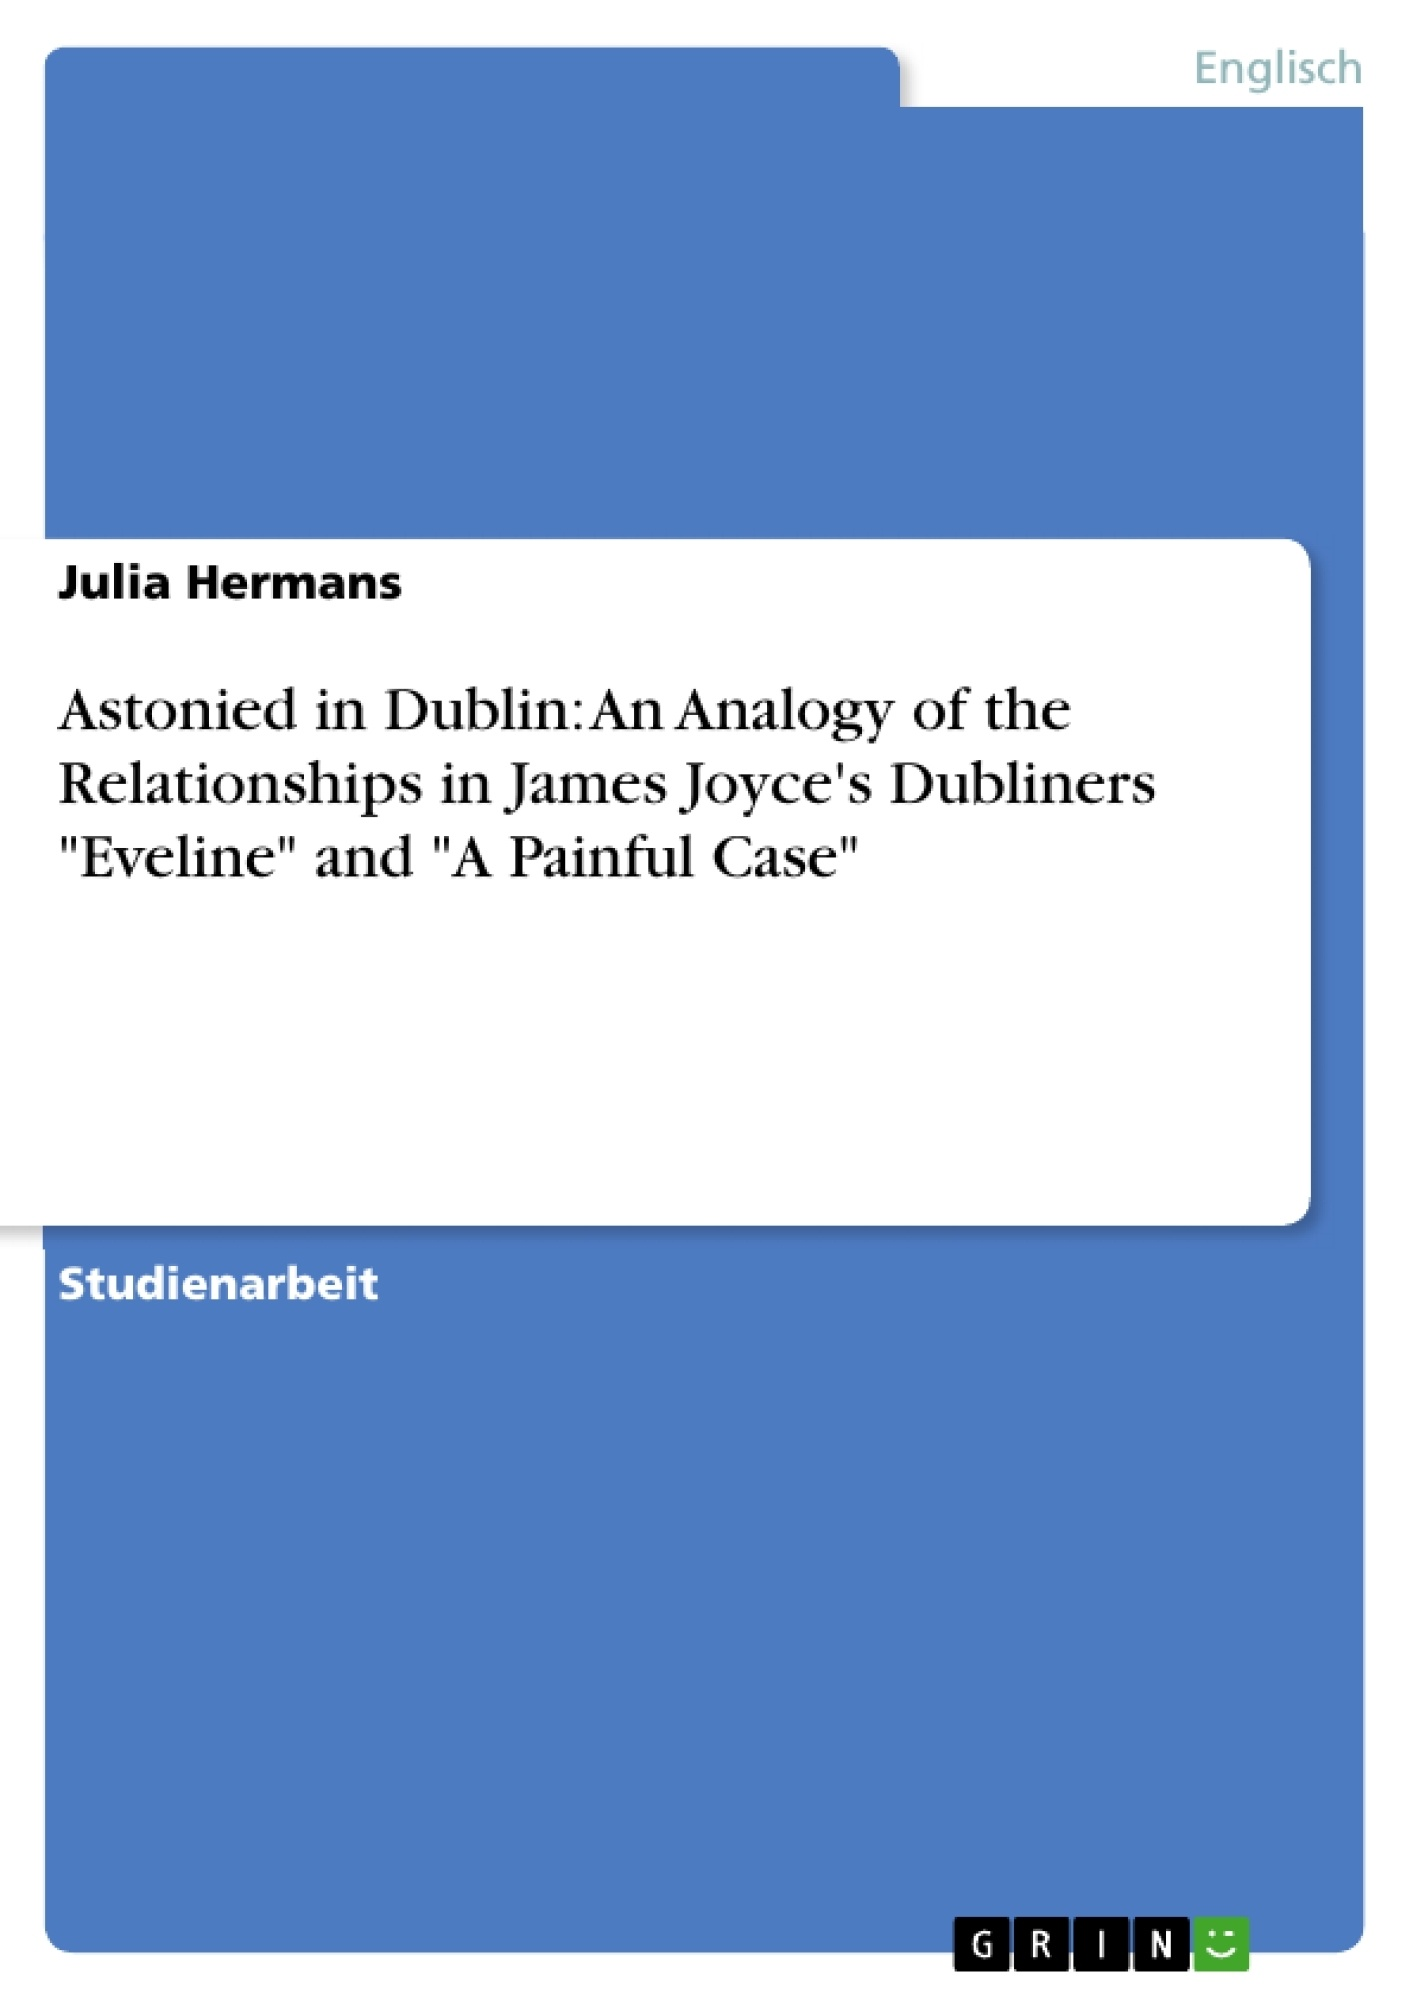 a plot review of james joyces book eveline Books singular collection, multiple mysteries honoring james joyce's 'dubliners,' published 100 years ago.